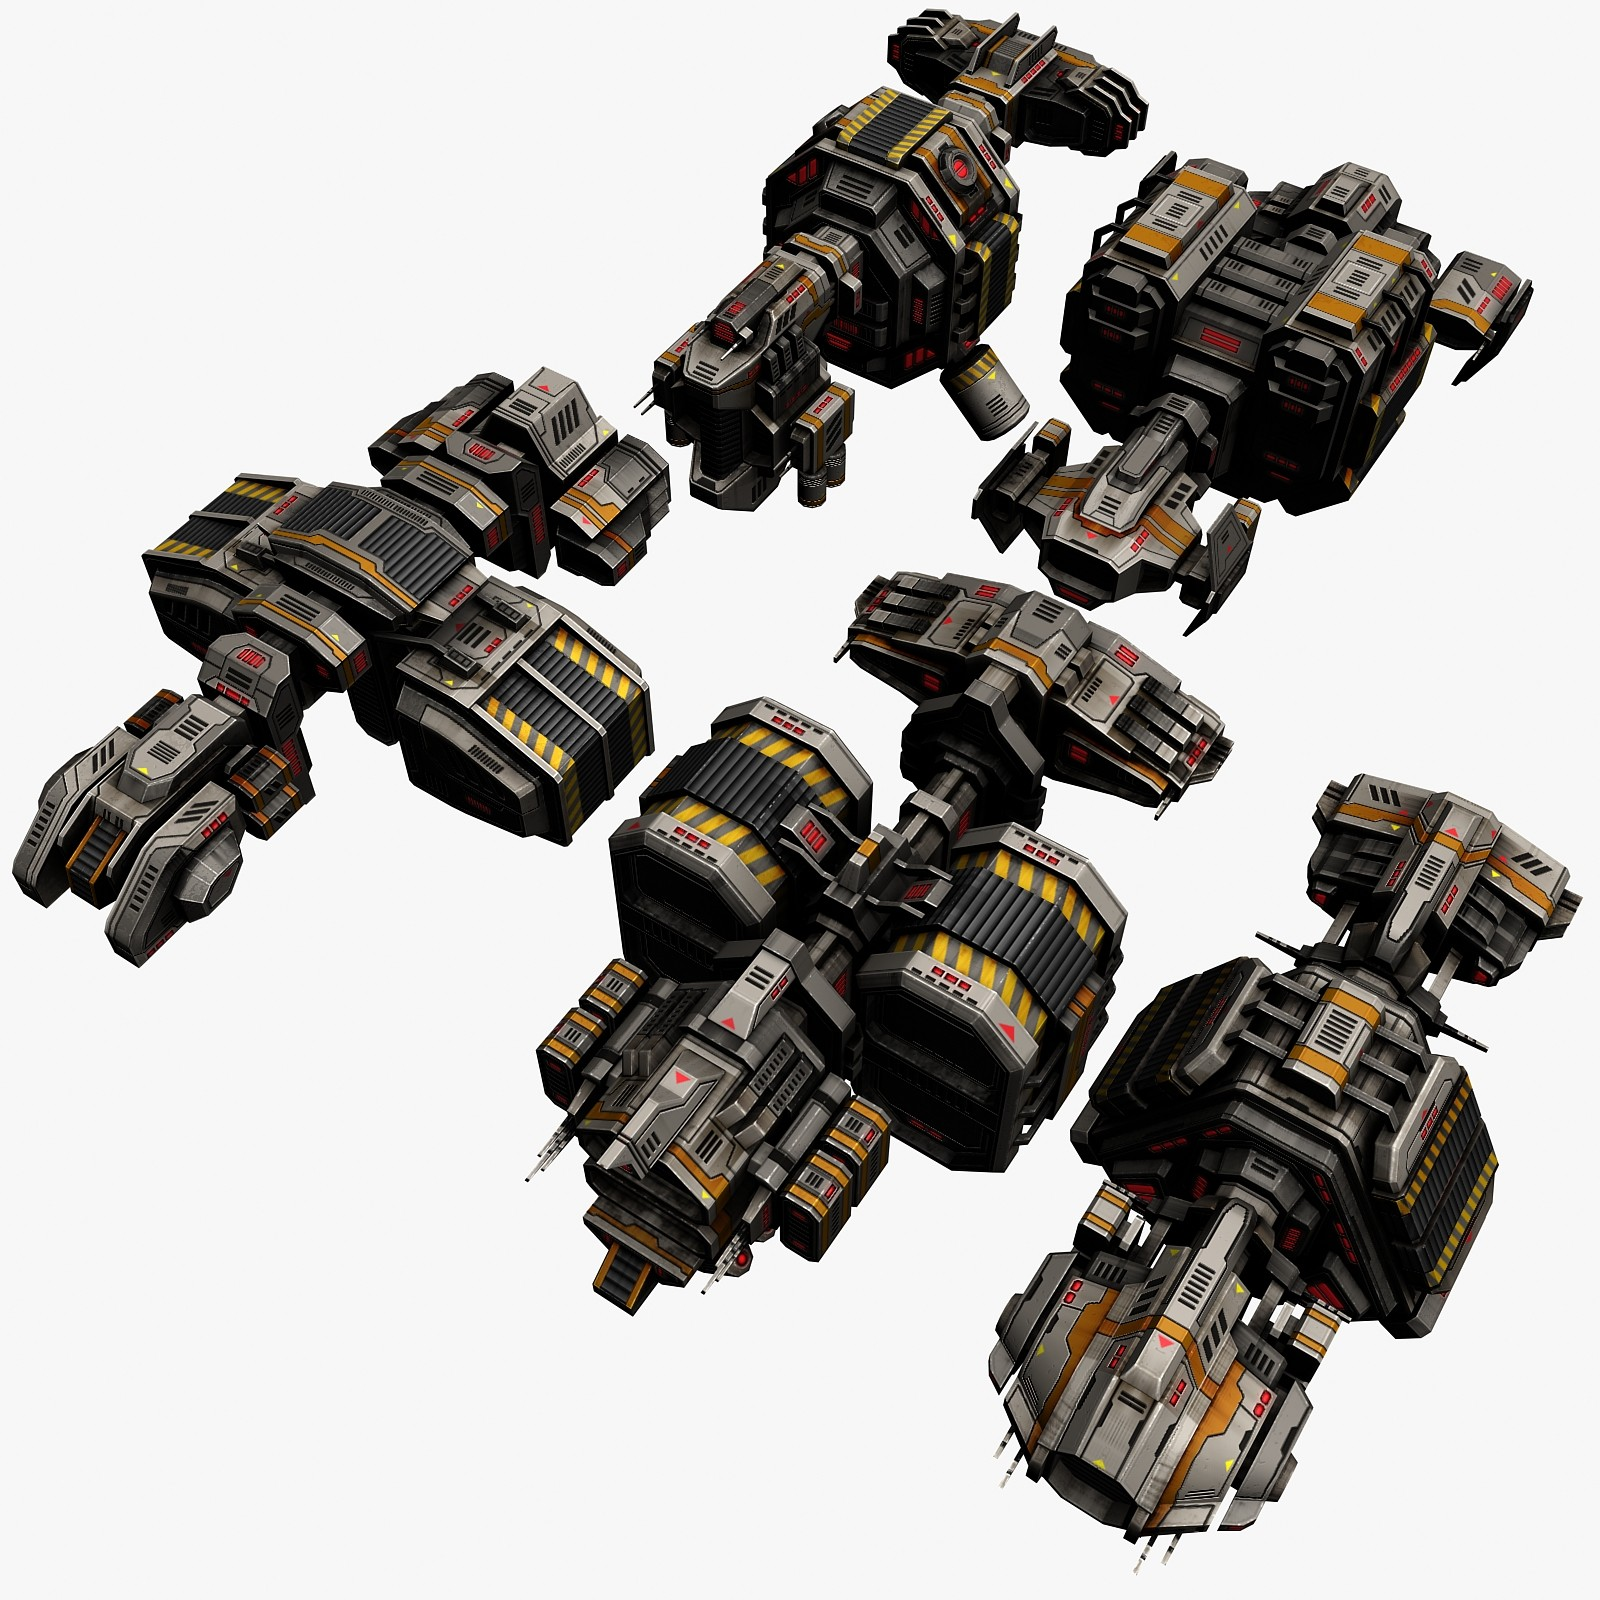 5 transport space ships 3d max